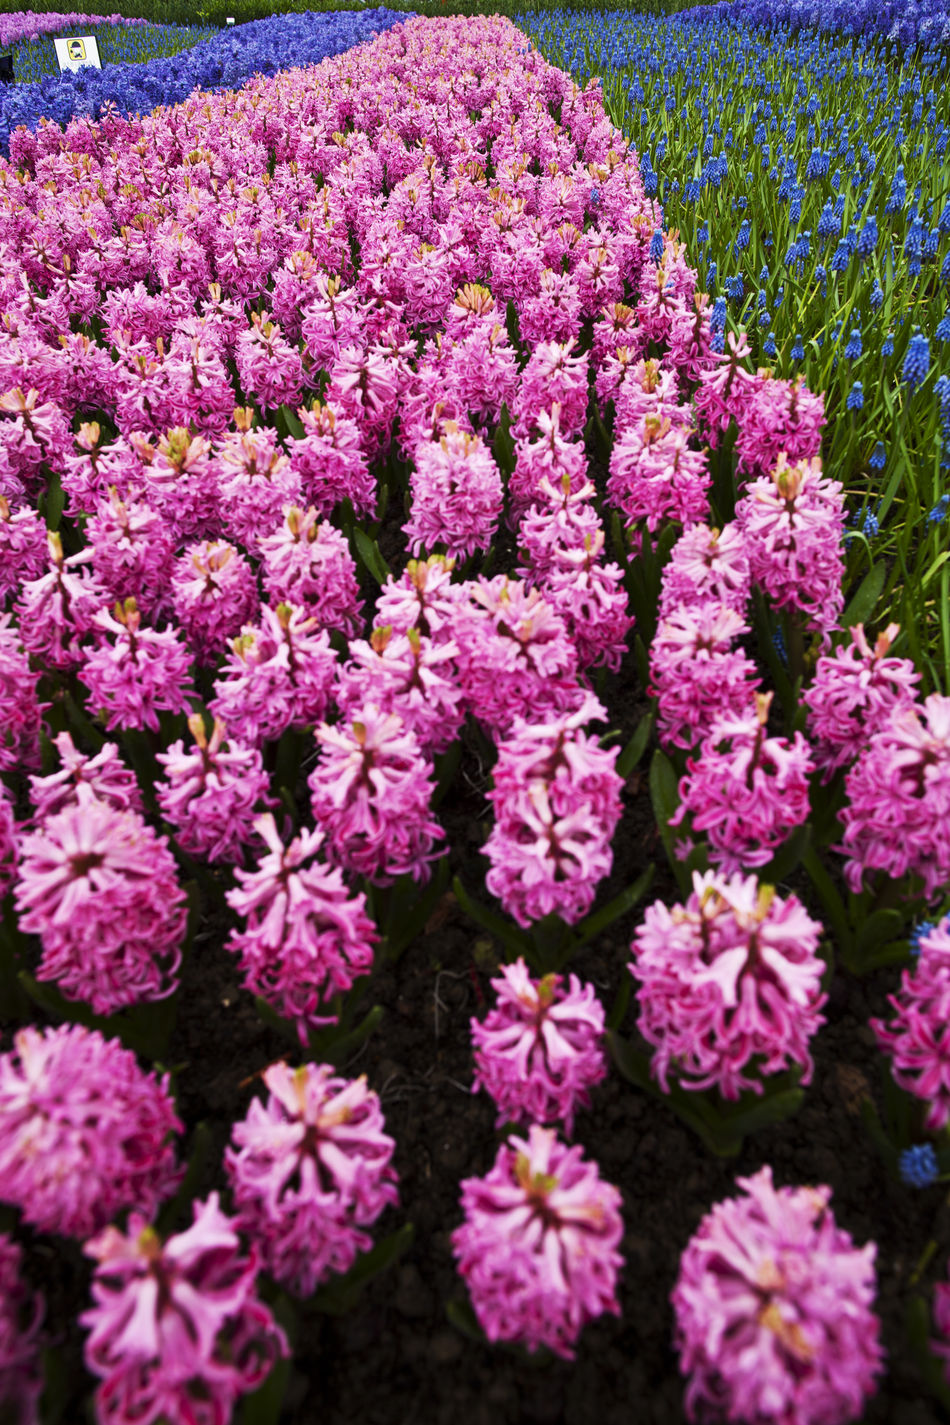 Beauty In Nature Close-up Day Flower Flower Head Fragility Freshness Growth Hyacinth Nature No People Outdoors Pink Plant Purple